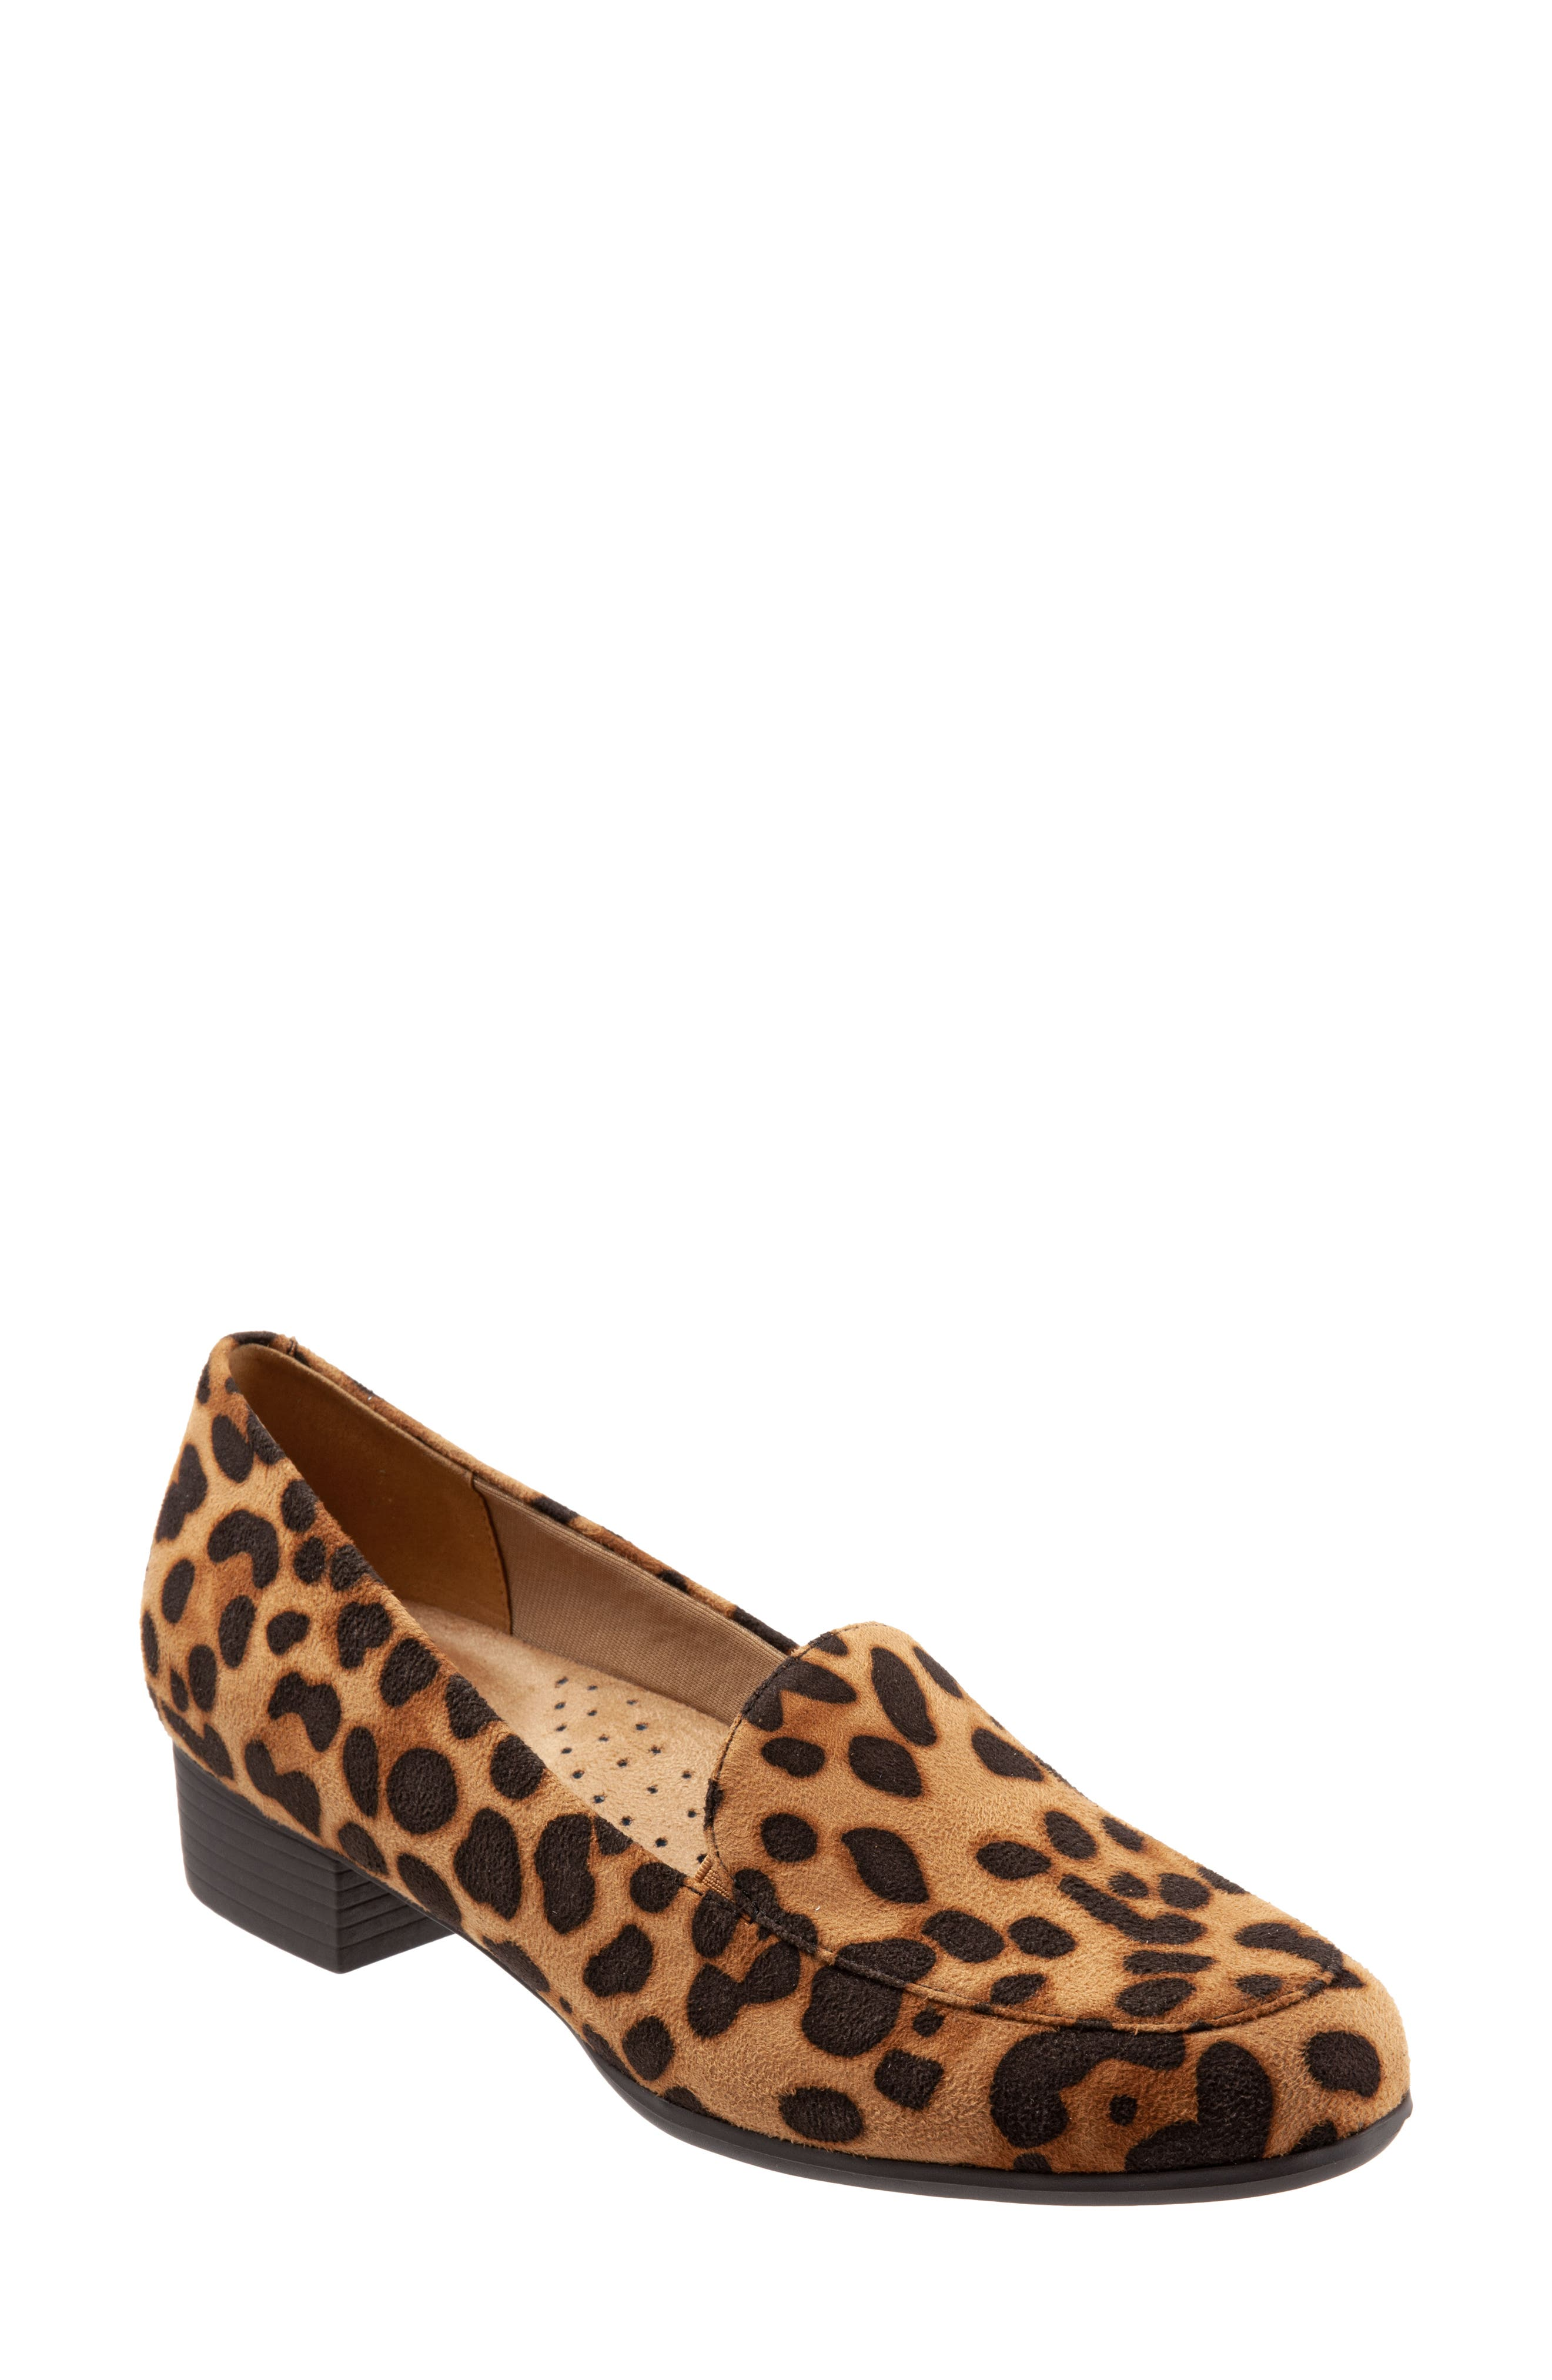 Leopard spots make a trend-savvy mark on a block-heel loafer that adds a bit of extra pizzazz to your office style. Style Name: Trotters Monarch Loafer (Women). Style Number: 6117110. Available in stores.